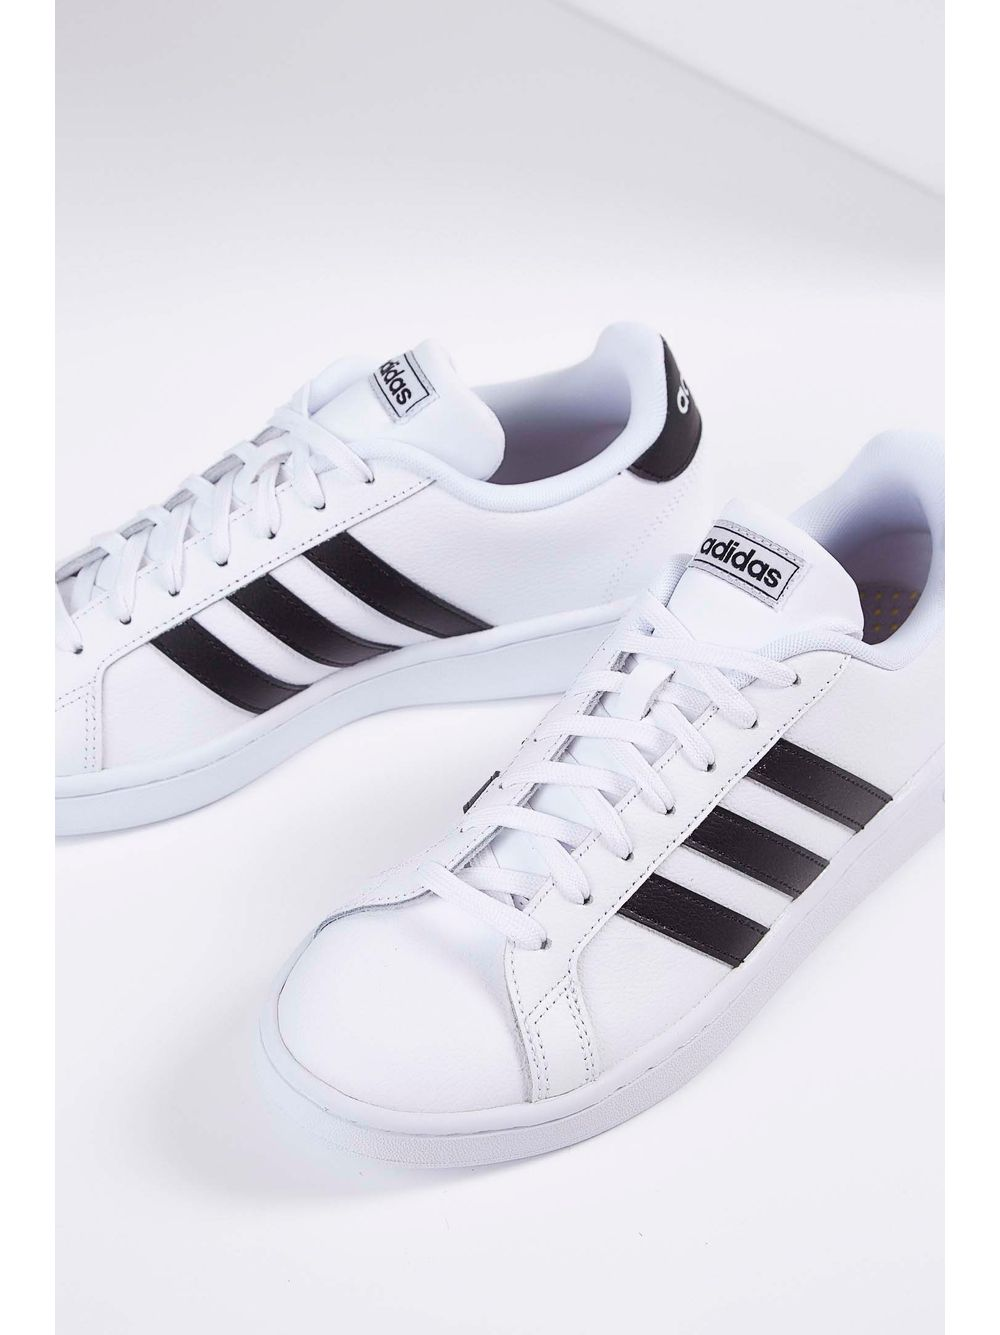 c9c5a14ec8 Tênis Casual Adidas Grand Court F36392 Branco - pittol